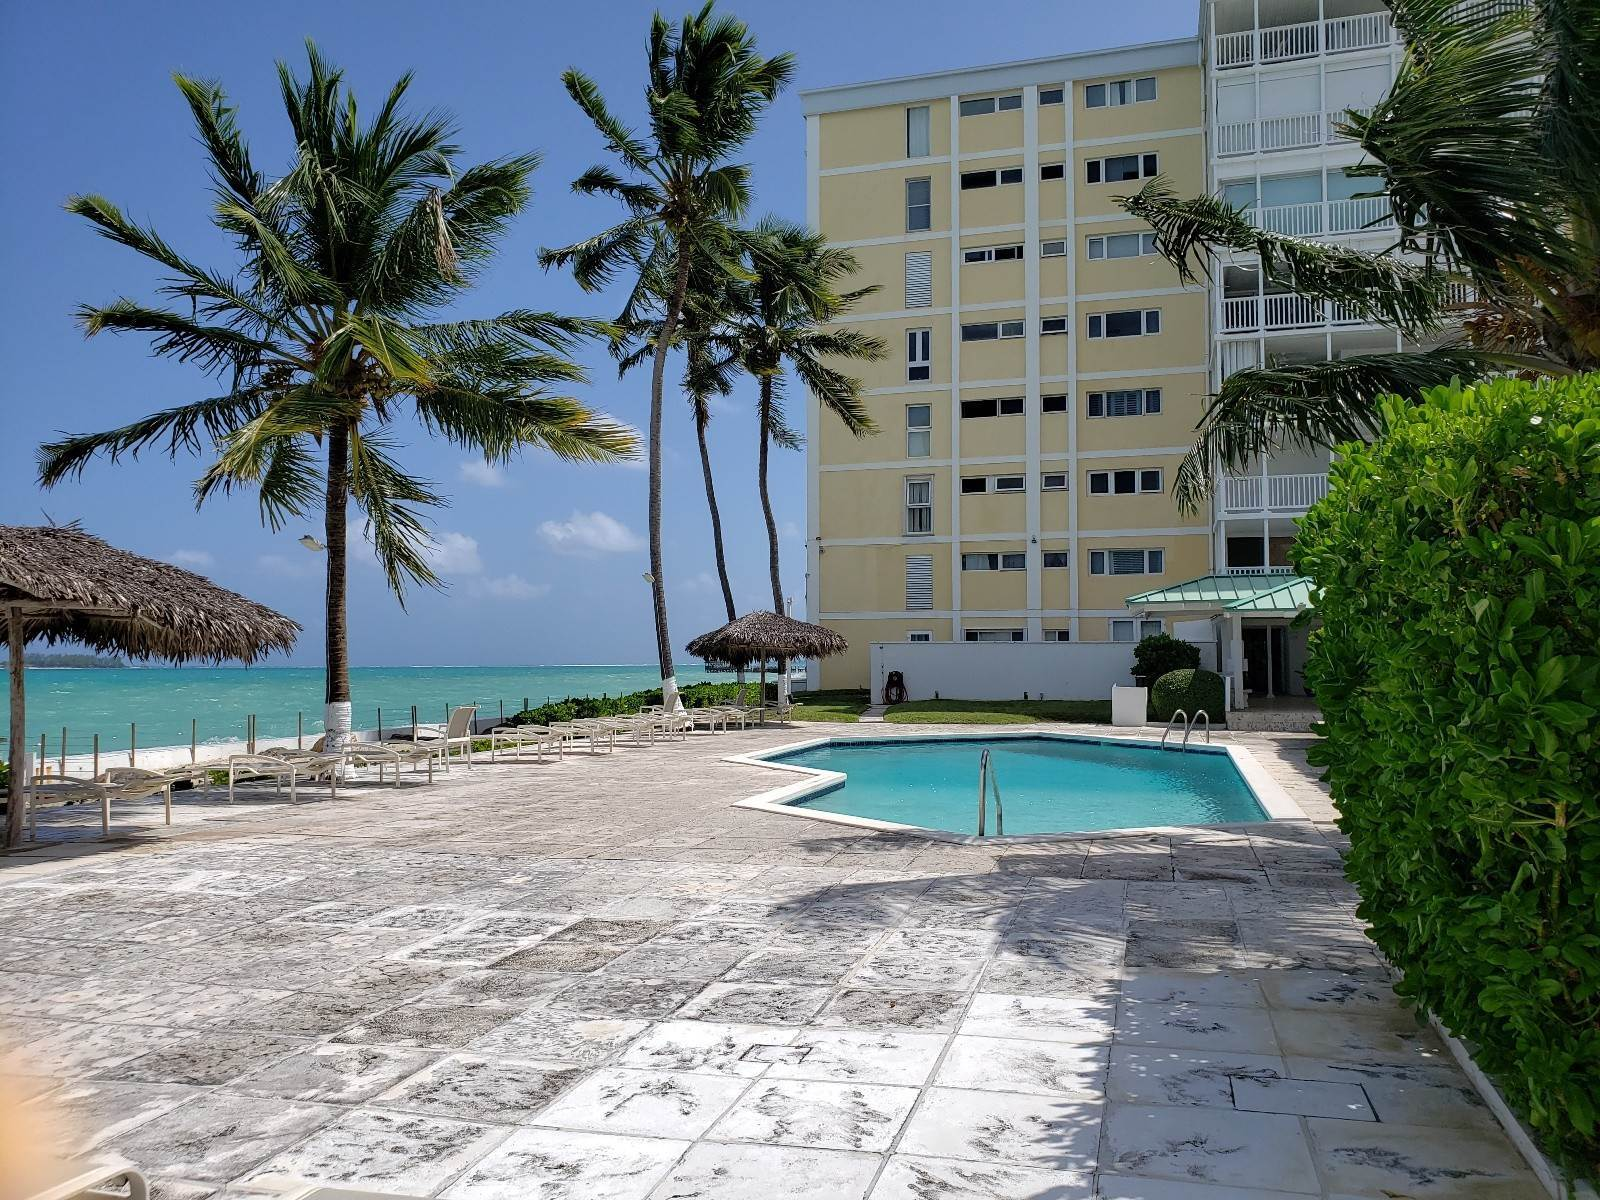 Co-op / Condo for Sale at Spacious 2-bed Conchrest Condo Conchrest, Cable Beach, Nassau And Paradise Island Bahamas